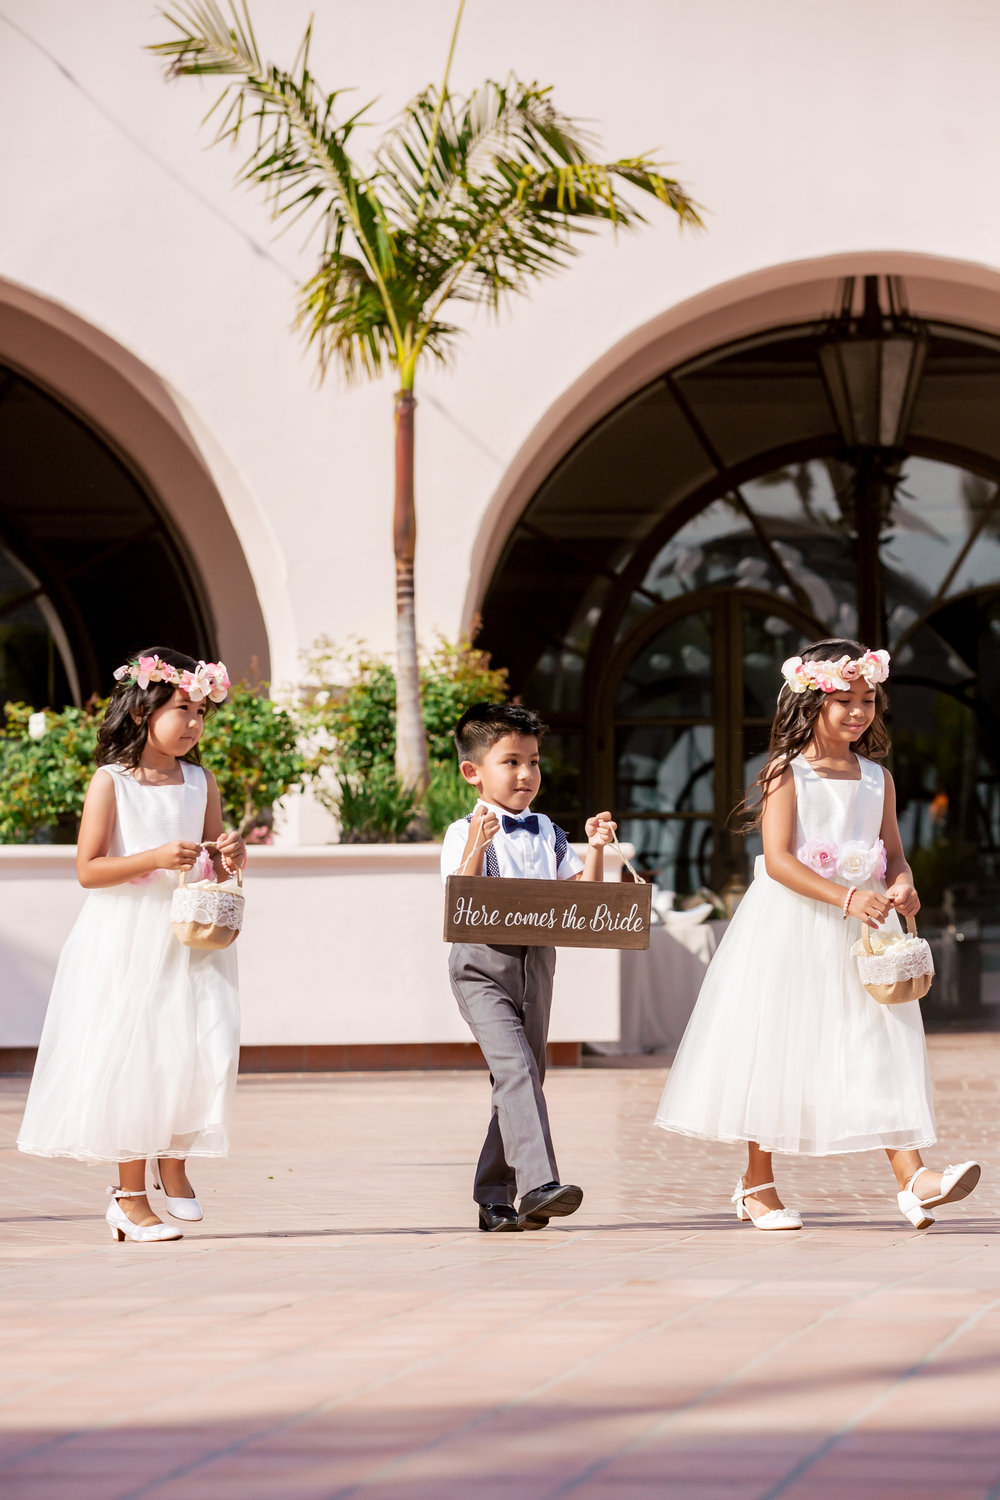 www.santabarbaraweddingstyle.com | Rewind Photography | Events by M and M | Hilton Santa Barbara | Flower Girl and Ring Bearer